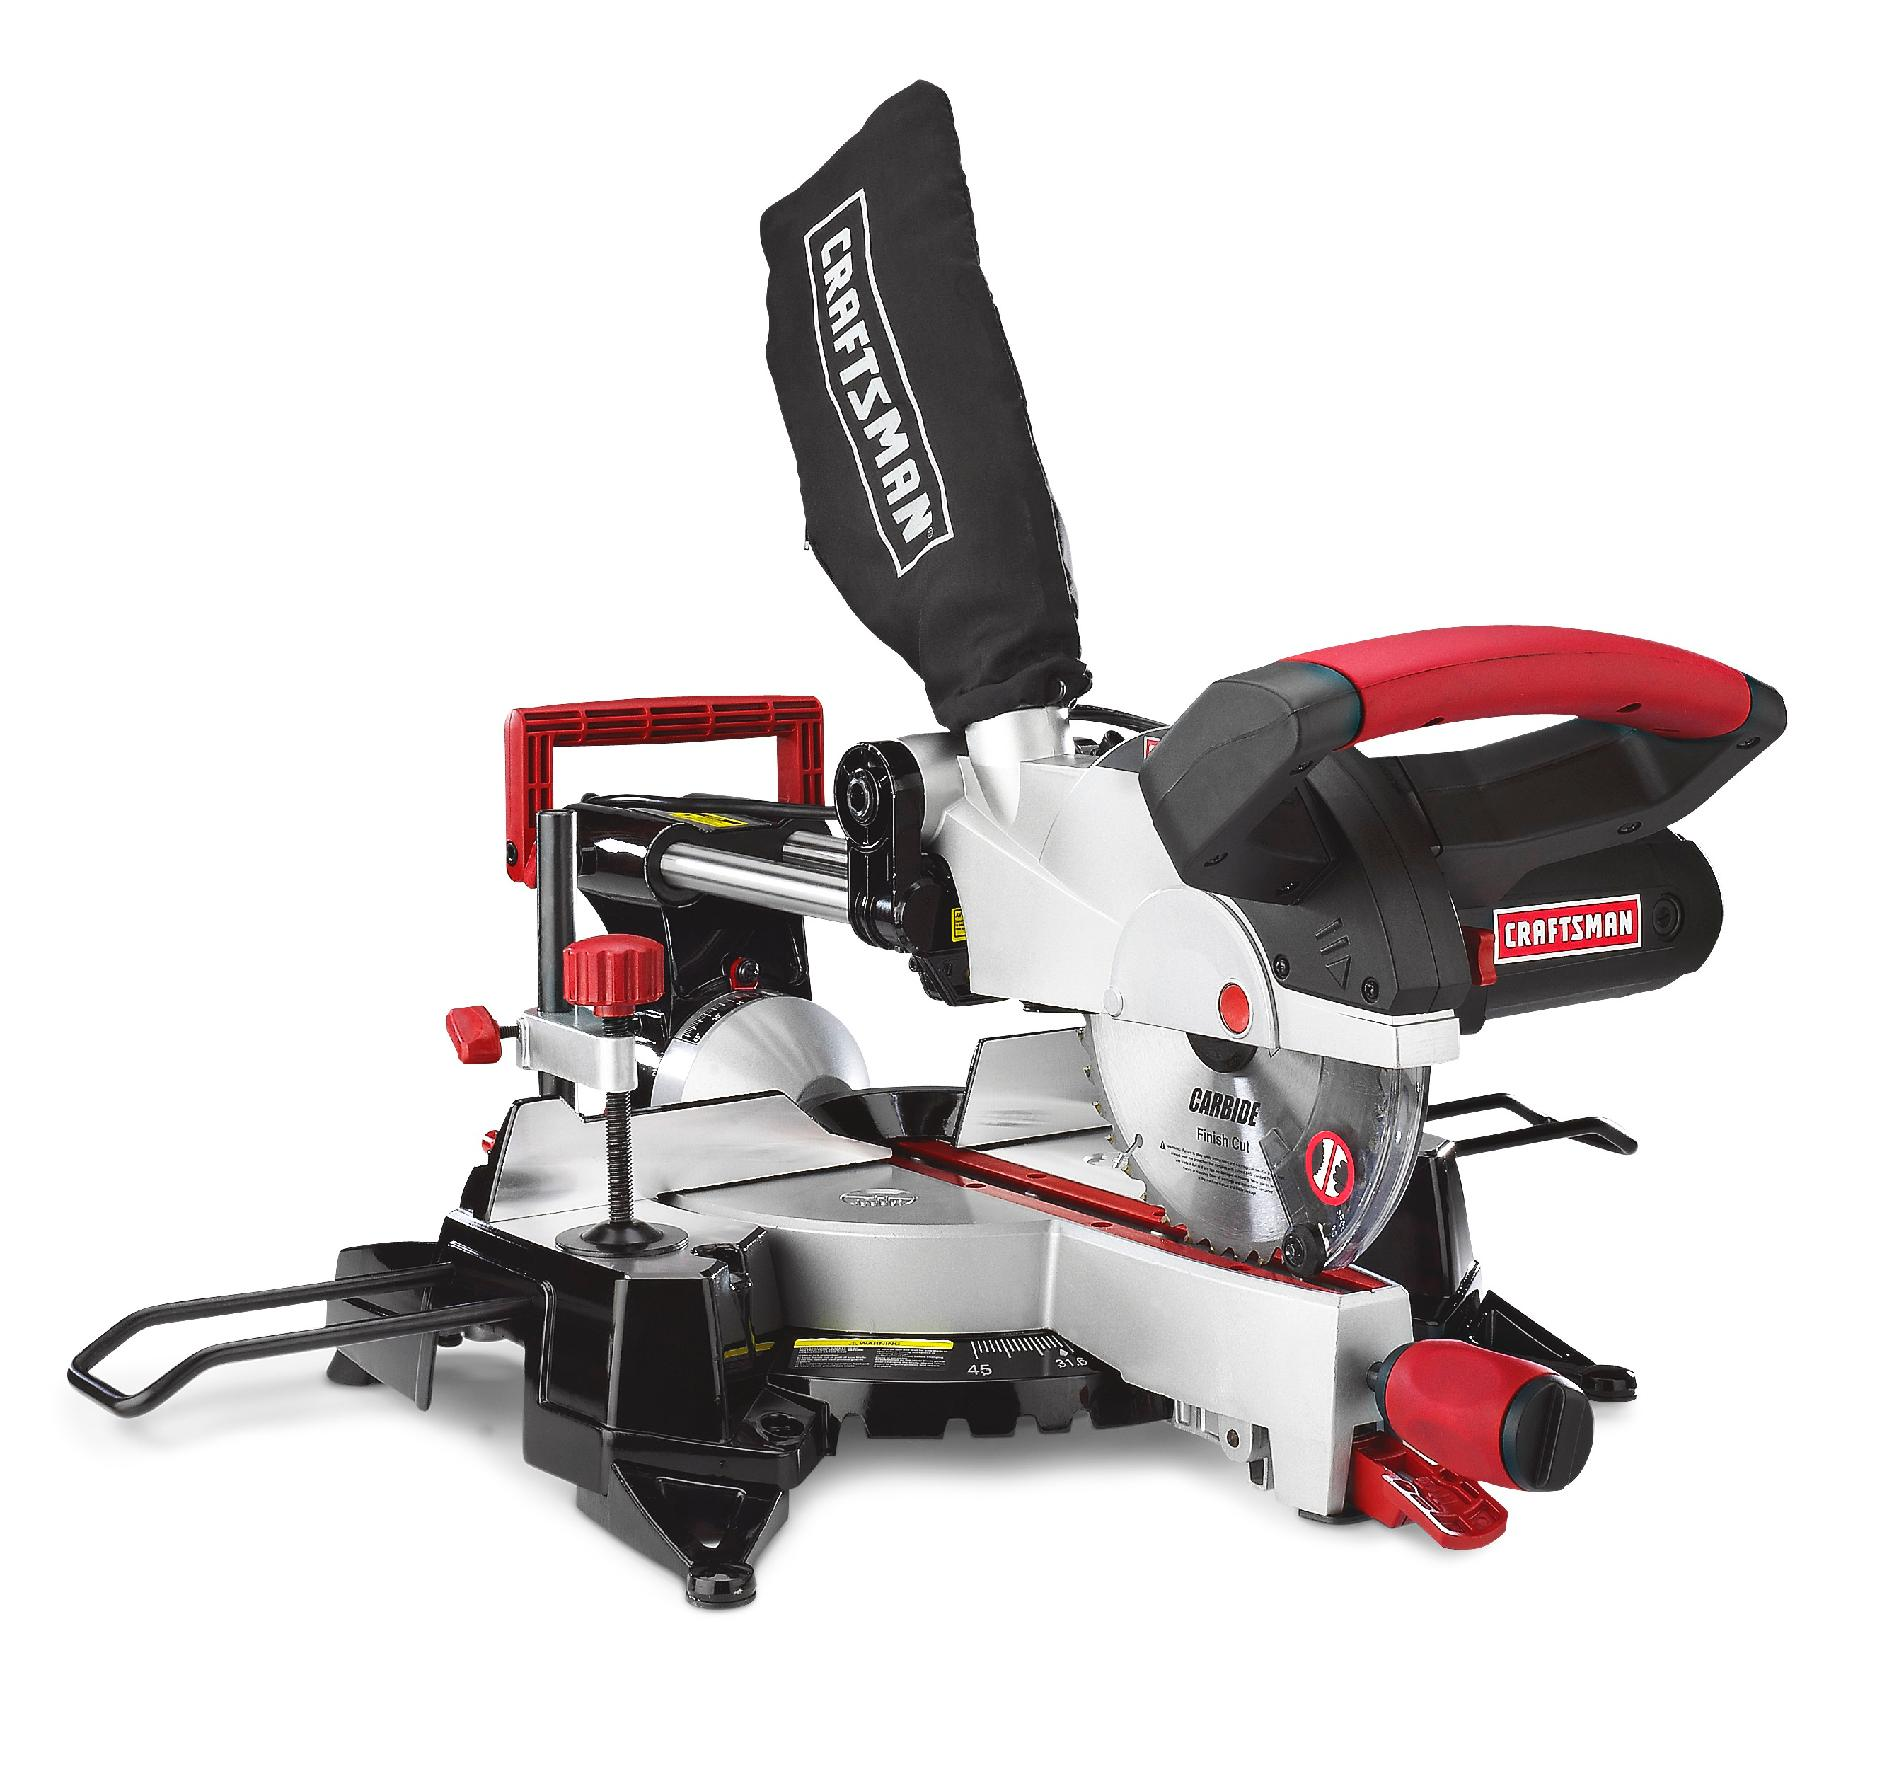 Craftsman 7-1/4-Inch Sliding Compound Miter Saw